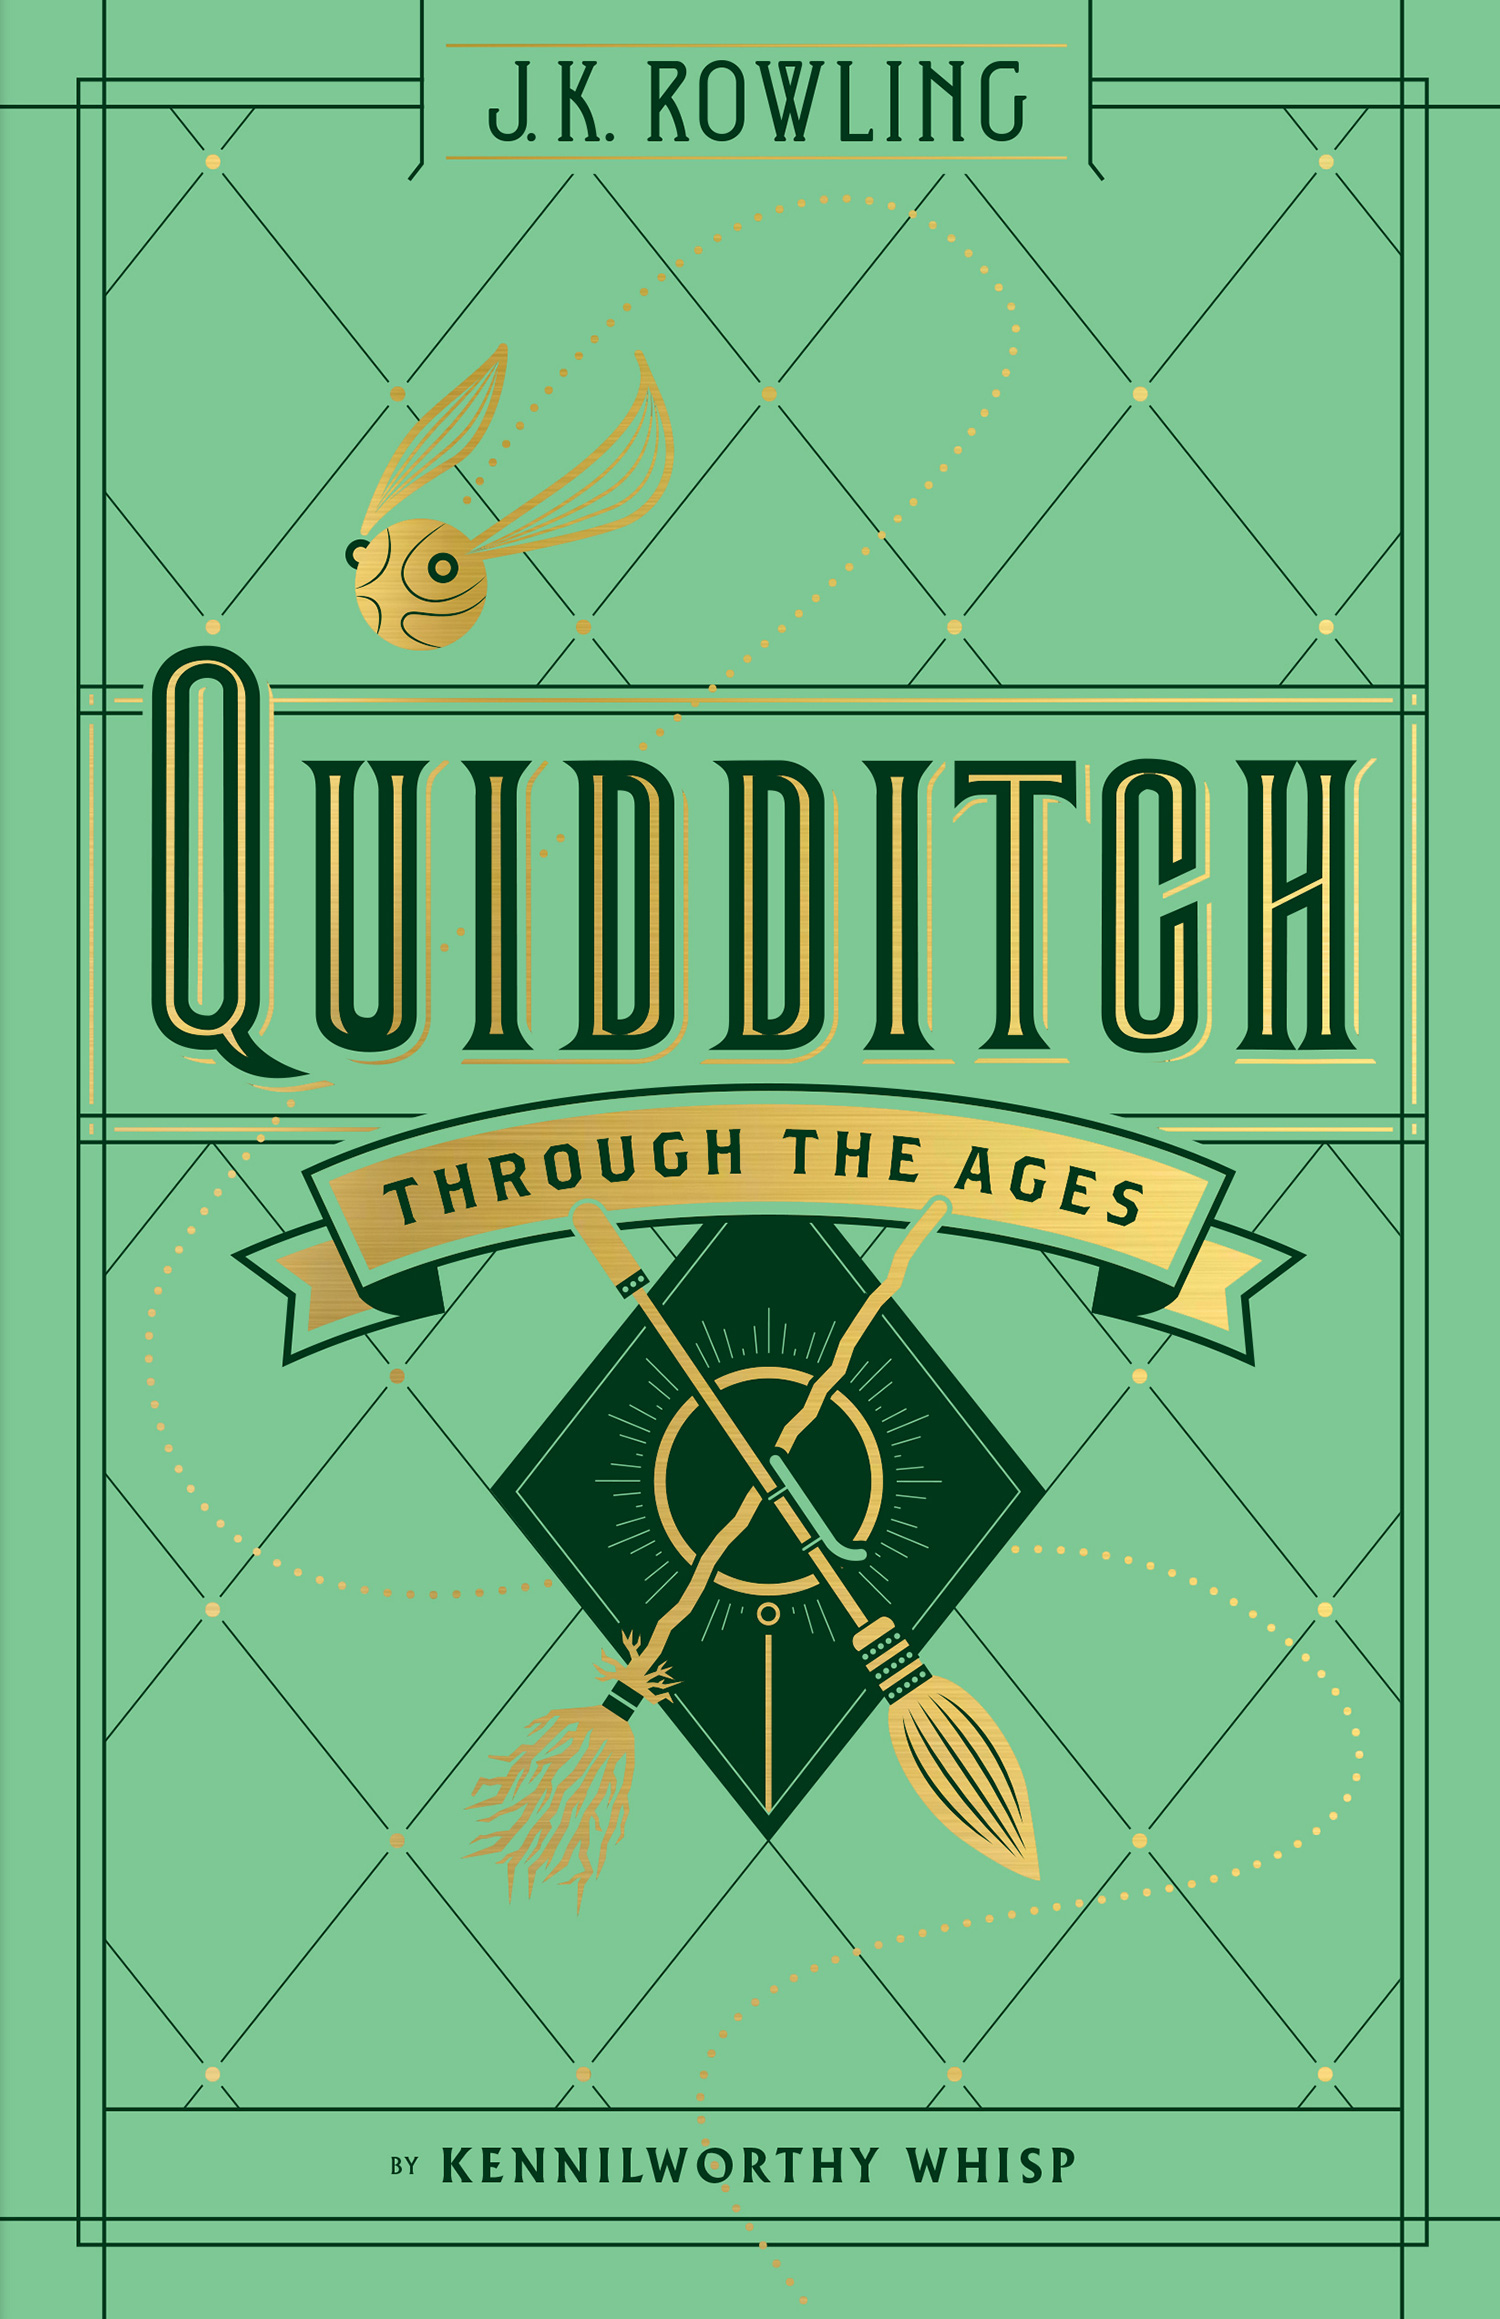 'Quidditch Through the Ages' Hogwarts Library edition (US)